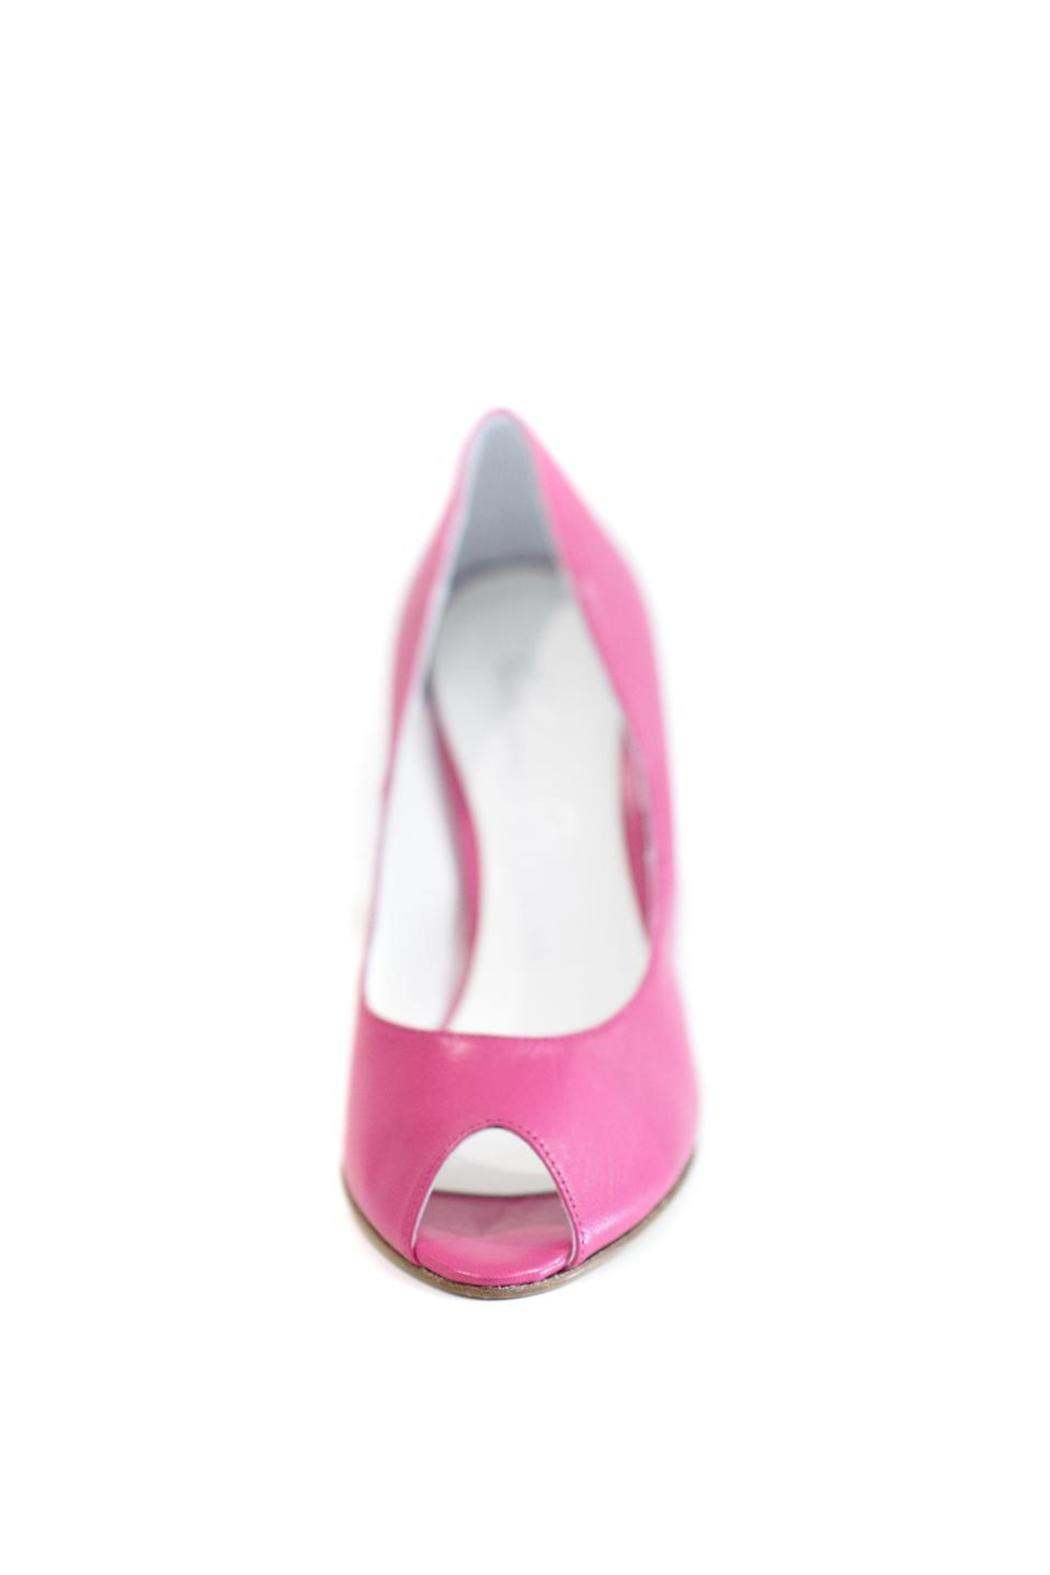 MARINA FERRANTI Hot Pink Leather Stiletto Pump - Front Full Image